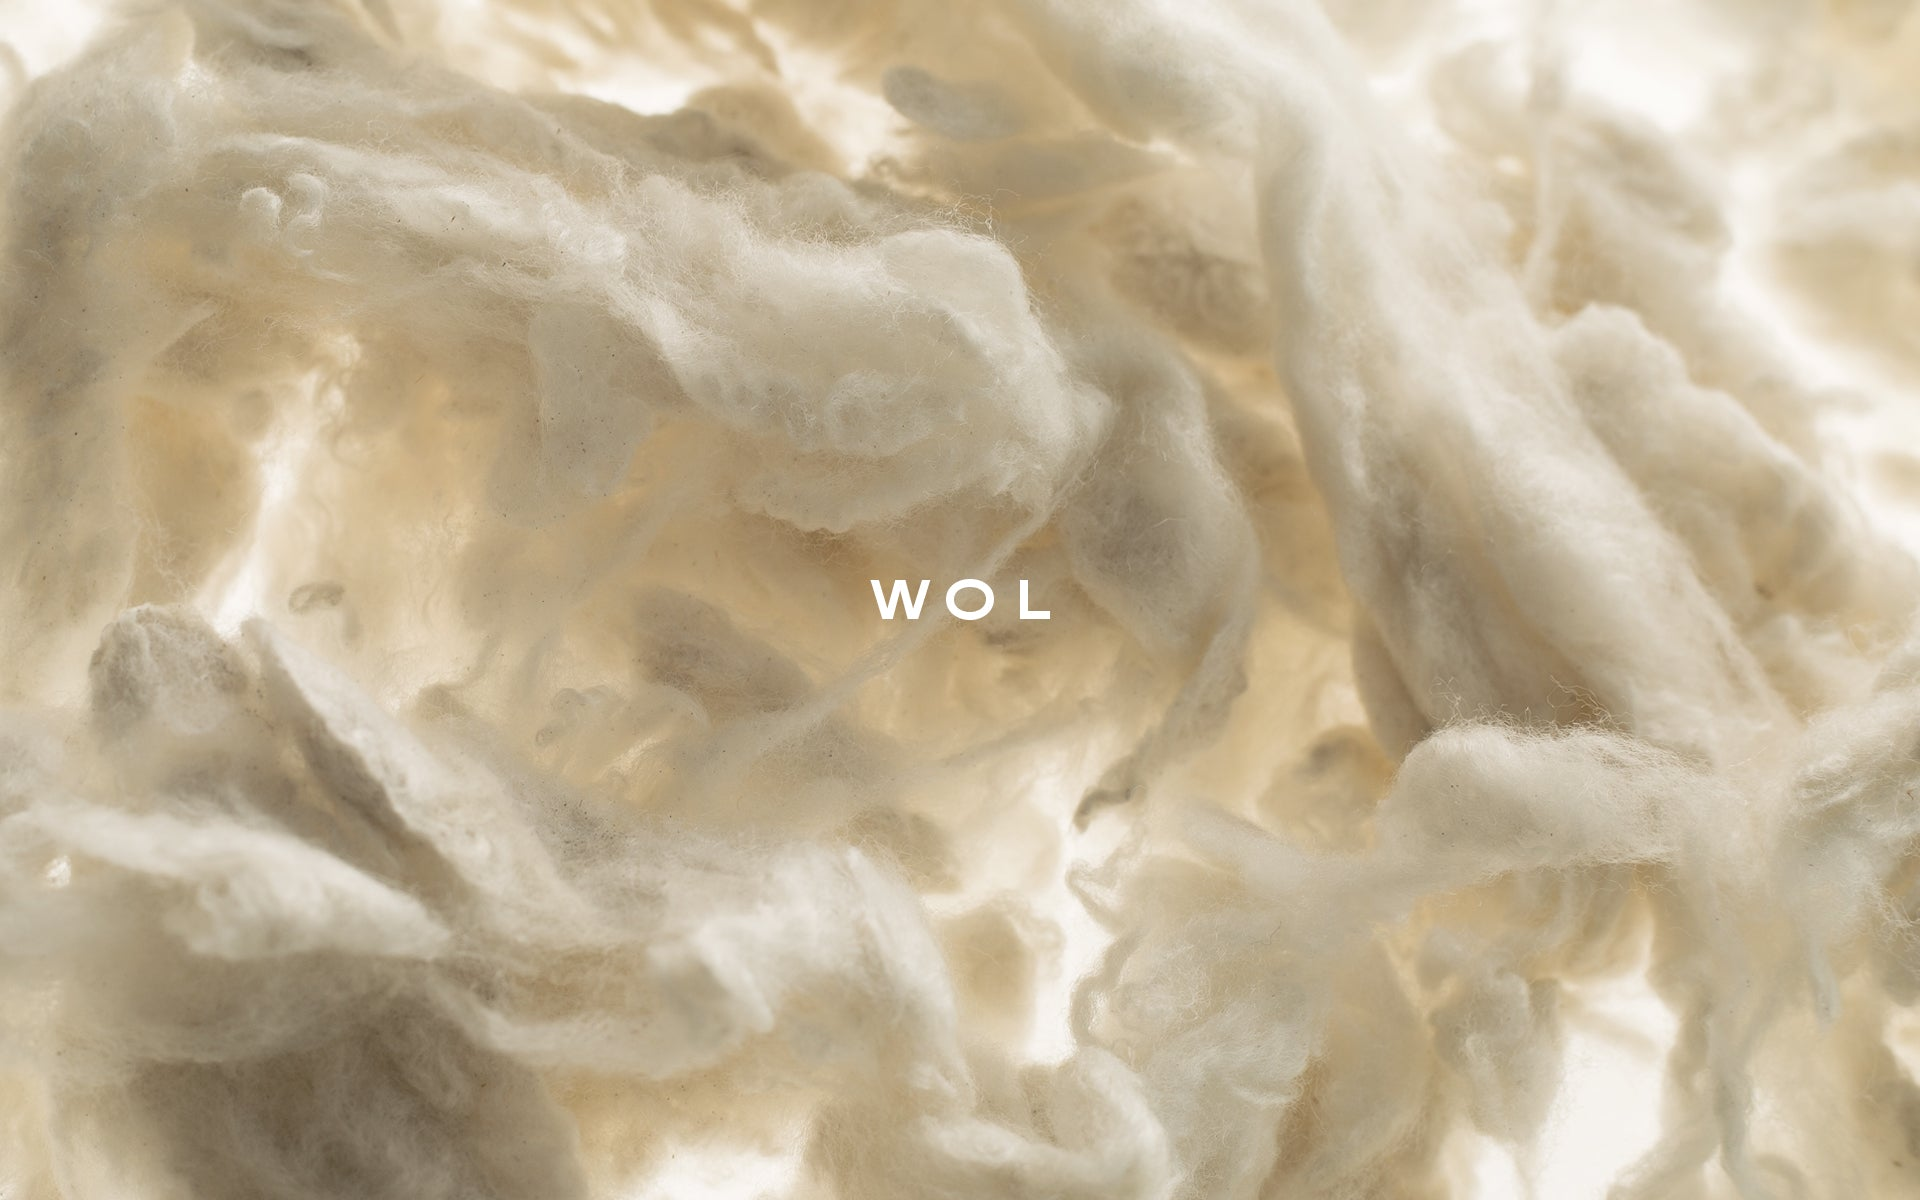 Vanilia fabric & care wol